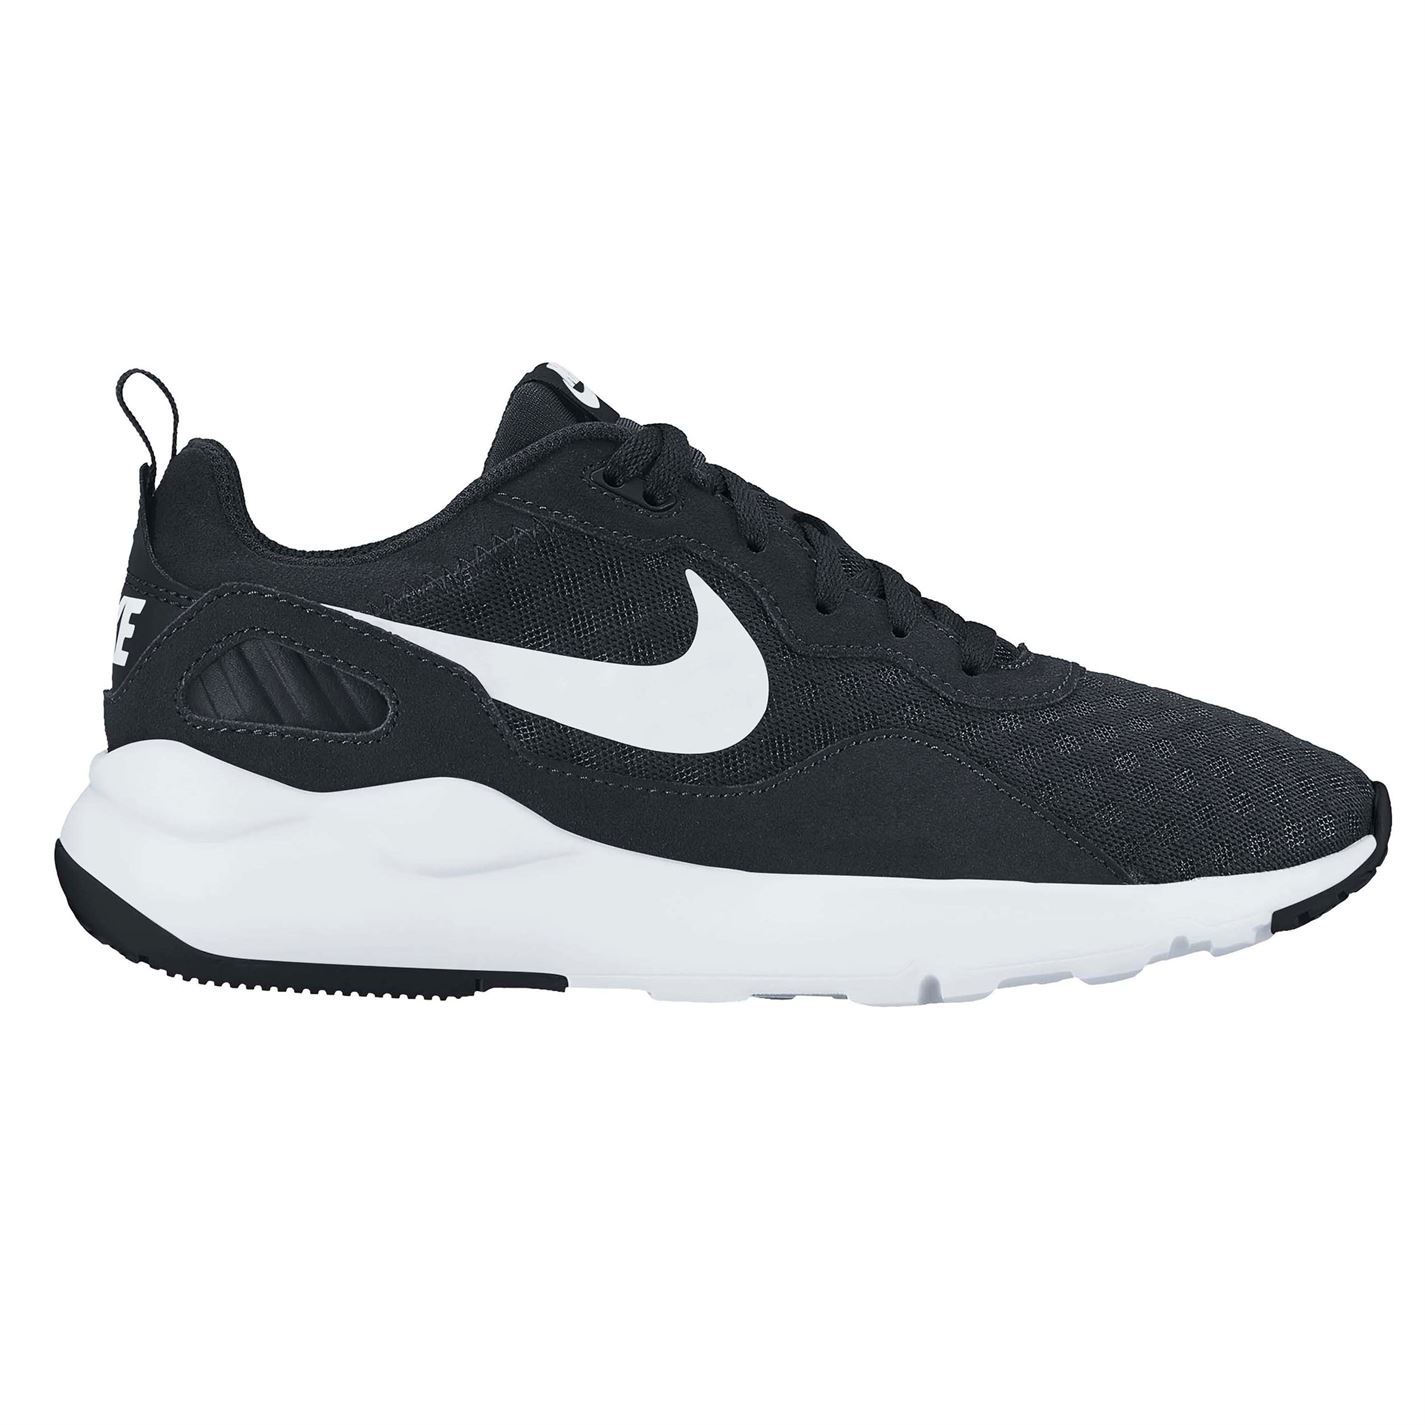 2e055cdc63e9b ... Nike LD Runner Running Shoes Womens Jogging Trainers Sneakers Fitness  ...